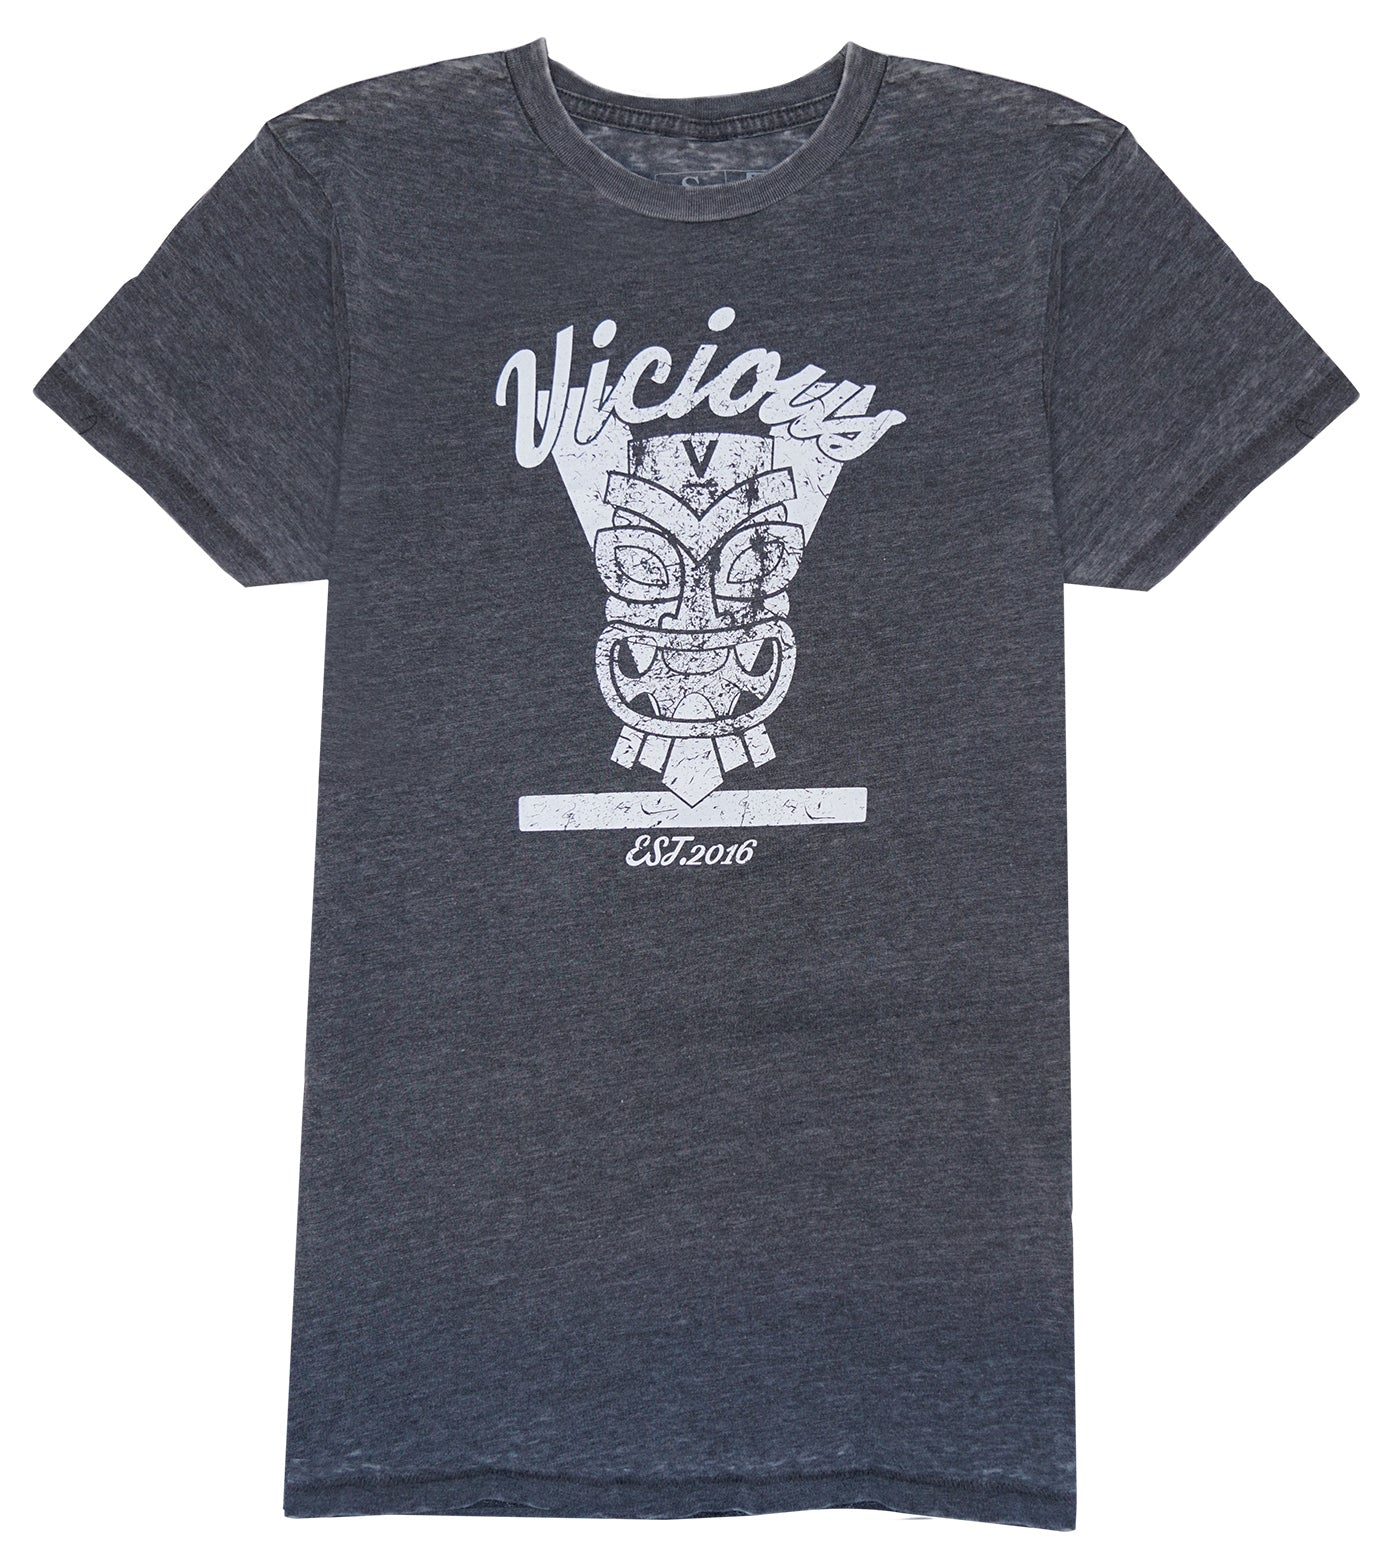 Vicious Tiki Tee - Anthracite (soft grey)